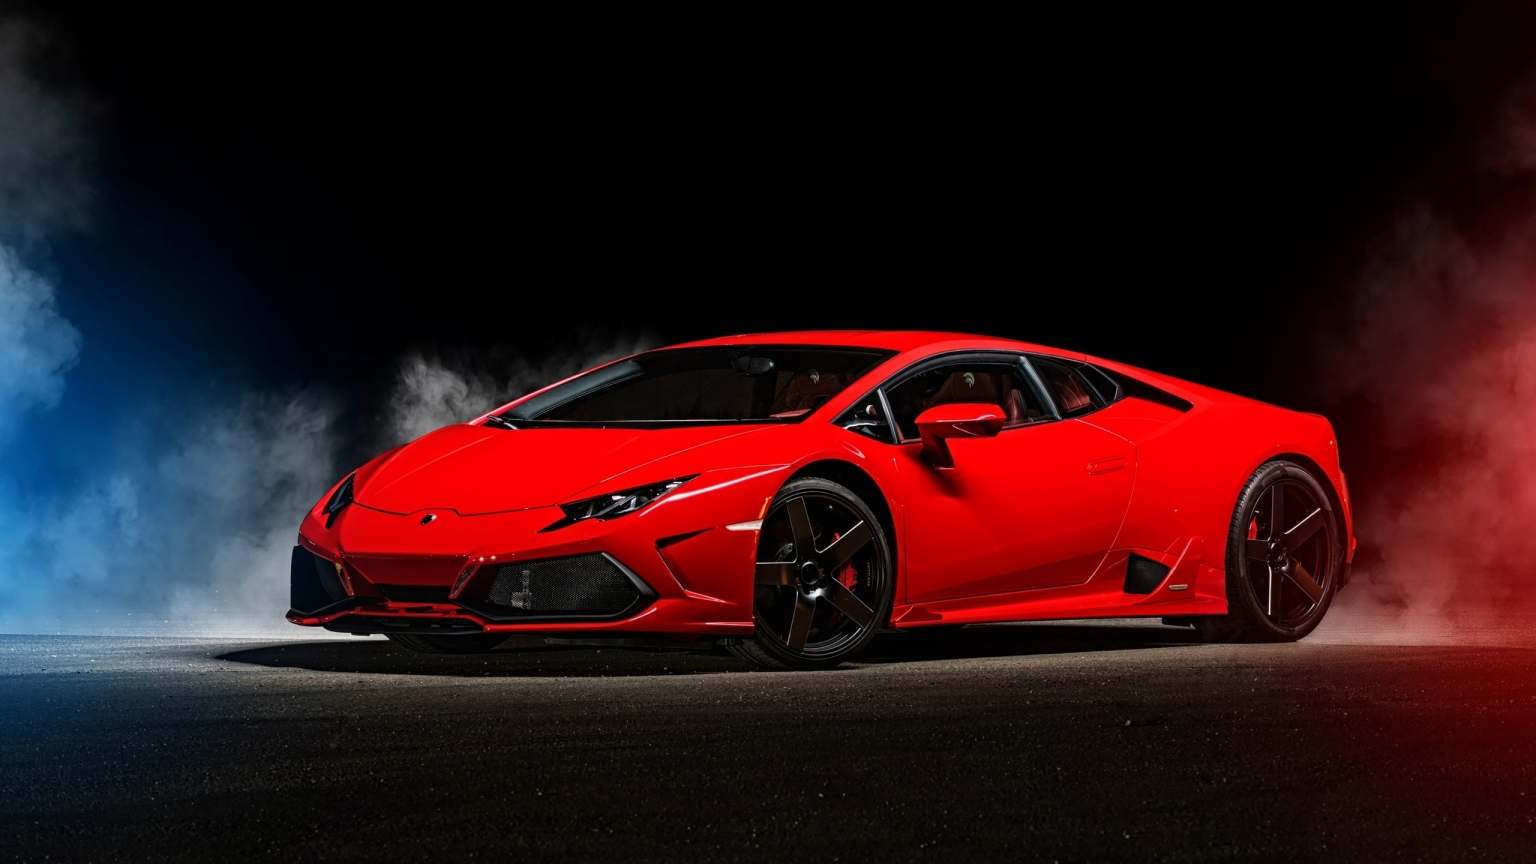 2015 Red Lamborghini Huracan for 1536 x 864 HDTV resolution